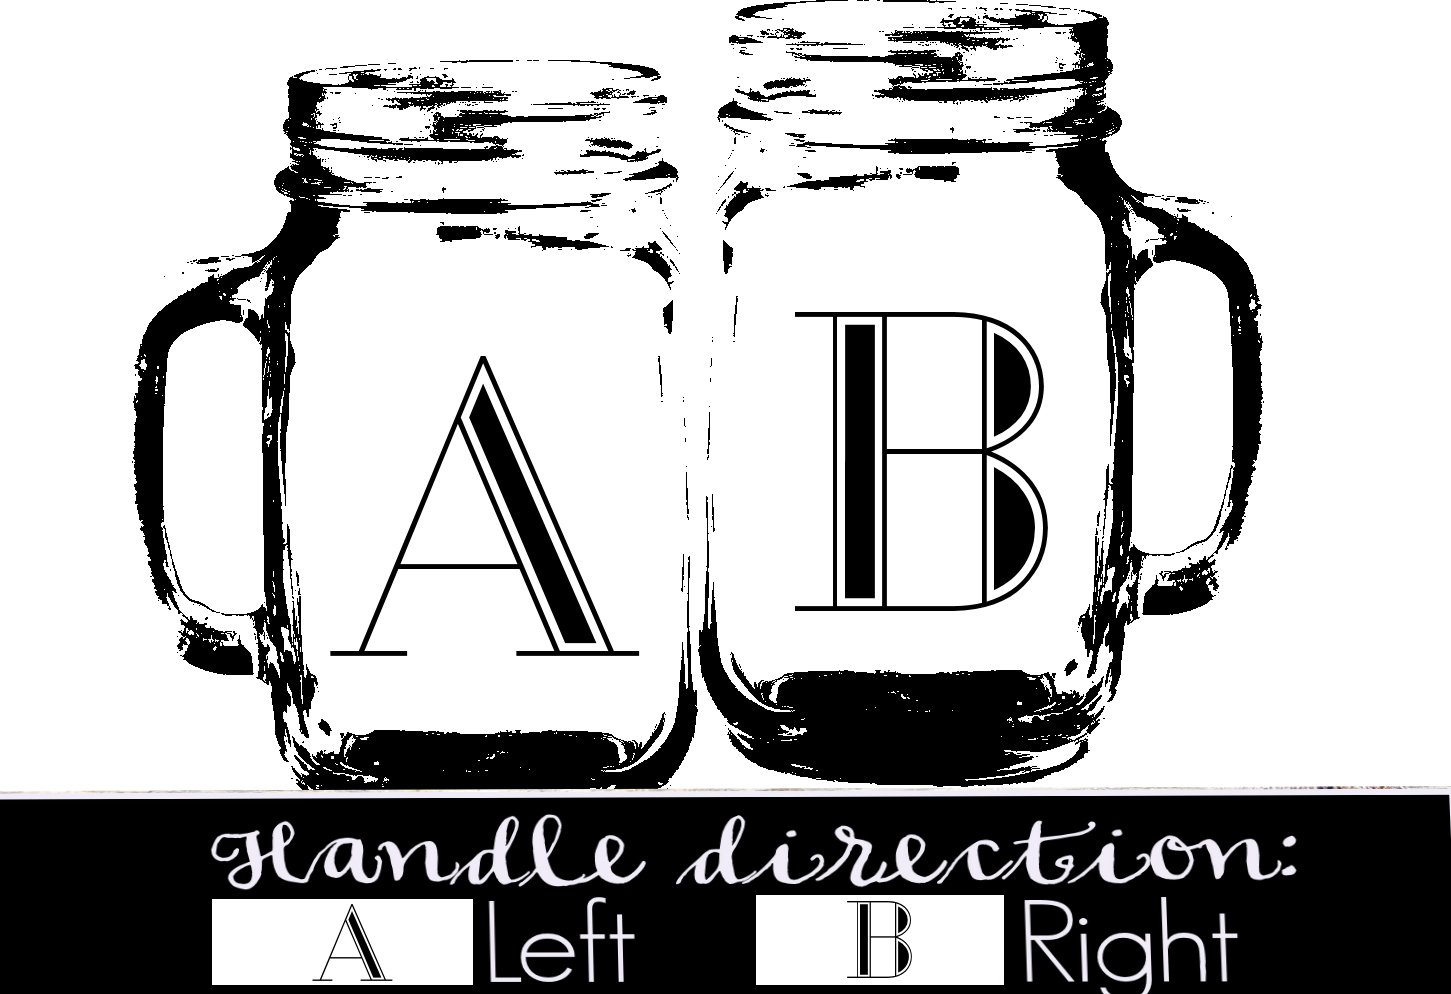 Initial Mr Mrs Set of 2 Personalized Mason Jars Drinking Mugs with Handle Personalized Custom Etched with Name and Date for Wedding, Engagement Anniversary Bridal Party Gift of Favor for Newlyweds Couple Etched Laser Engraved His and Hers Couple Gift Idea by Custom-Engraved-Glasses-by-StockingFactory (Image #2)